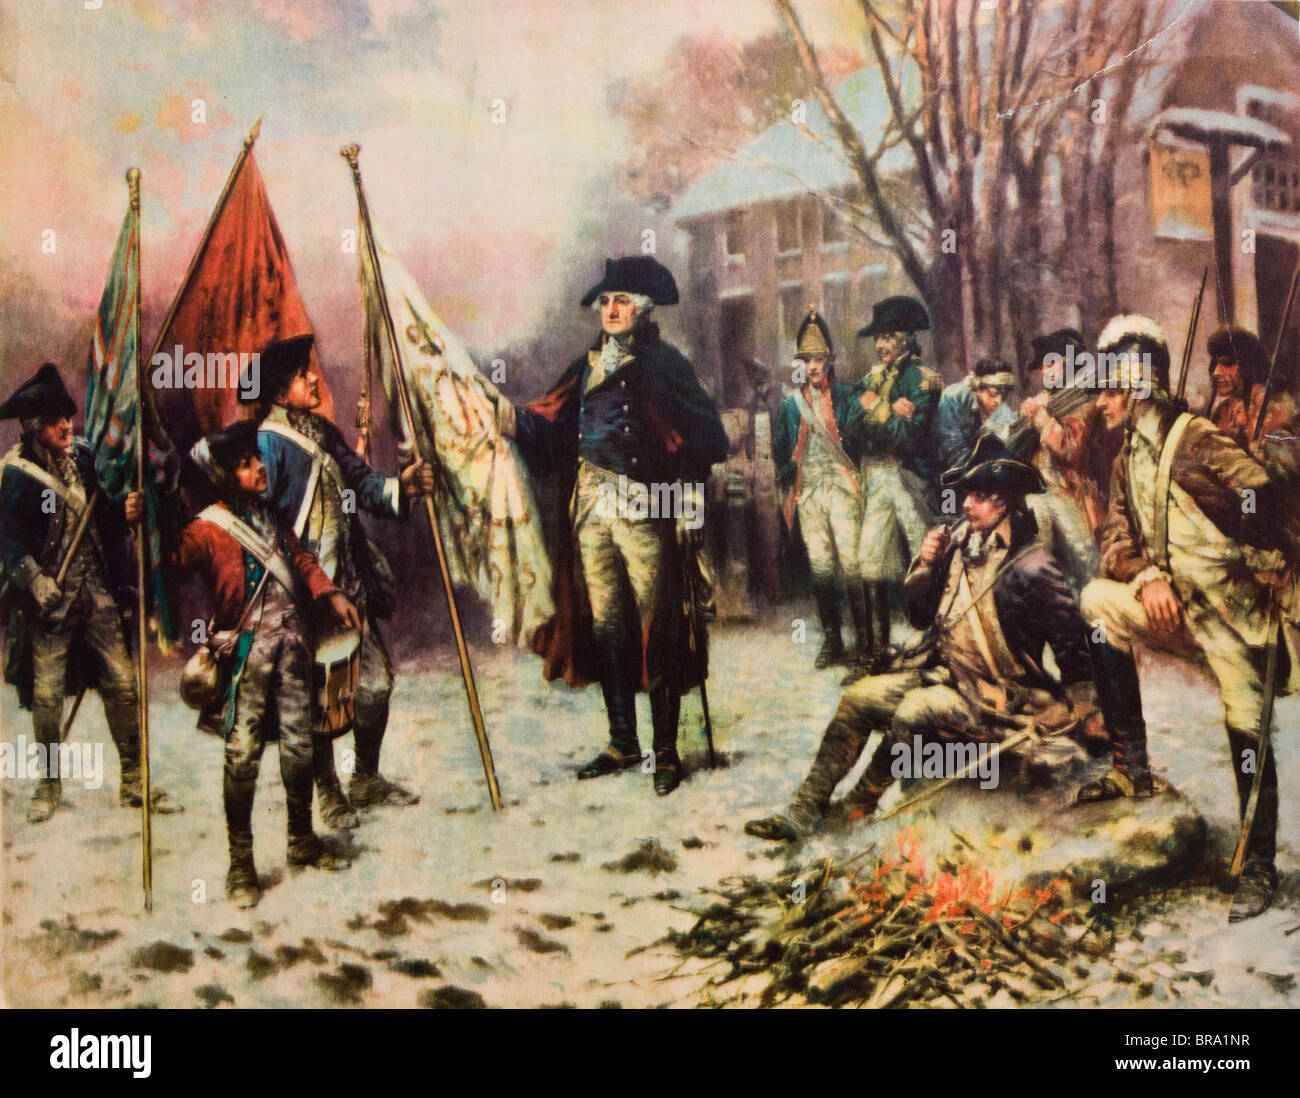 1700s 1770s PAINTING OF GEORGE WASHINGTON WINTER AT VALLEY FORGE WITH SOLDIERS AROUND HIM AMERICAN REVOLUTION - Stock Image